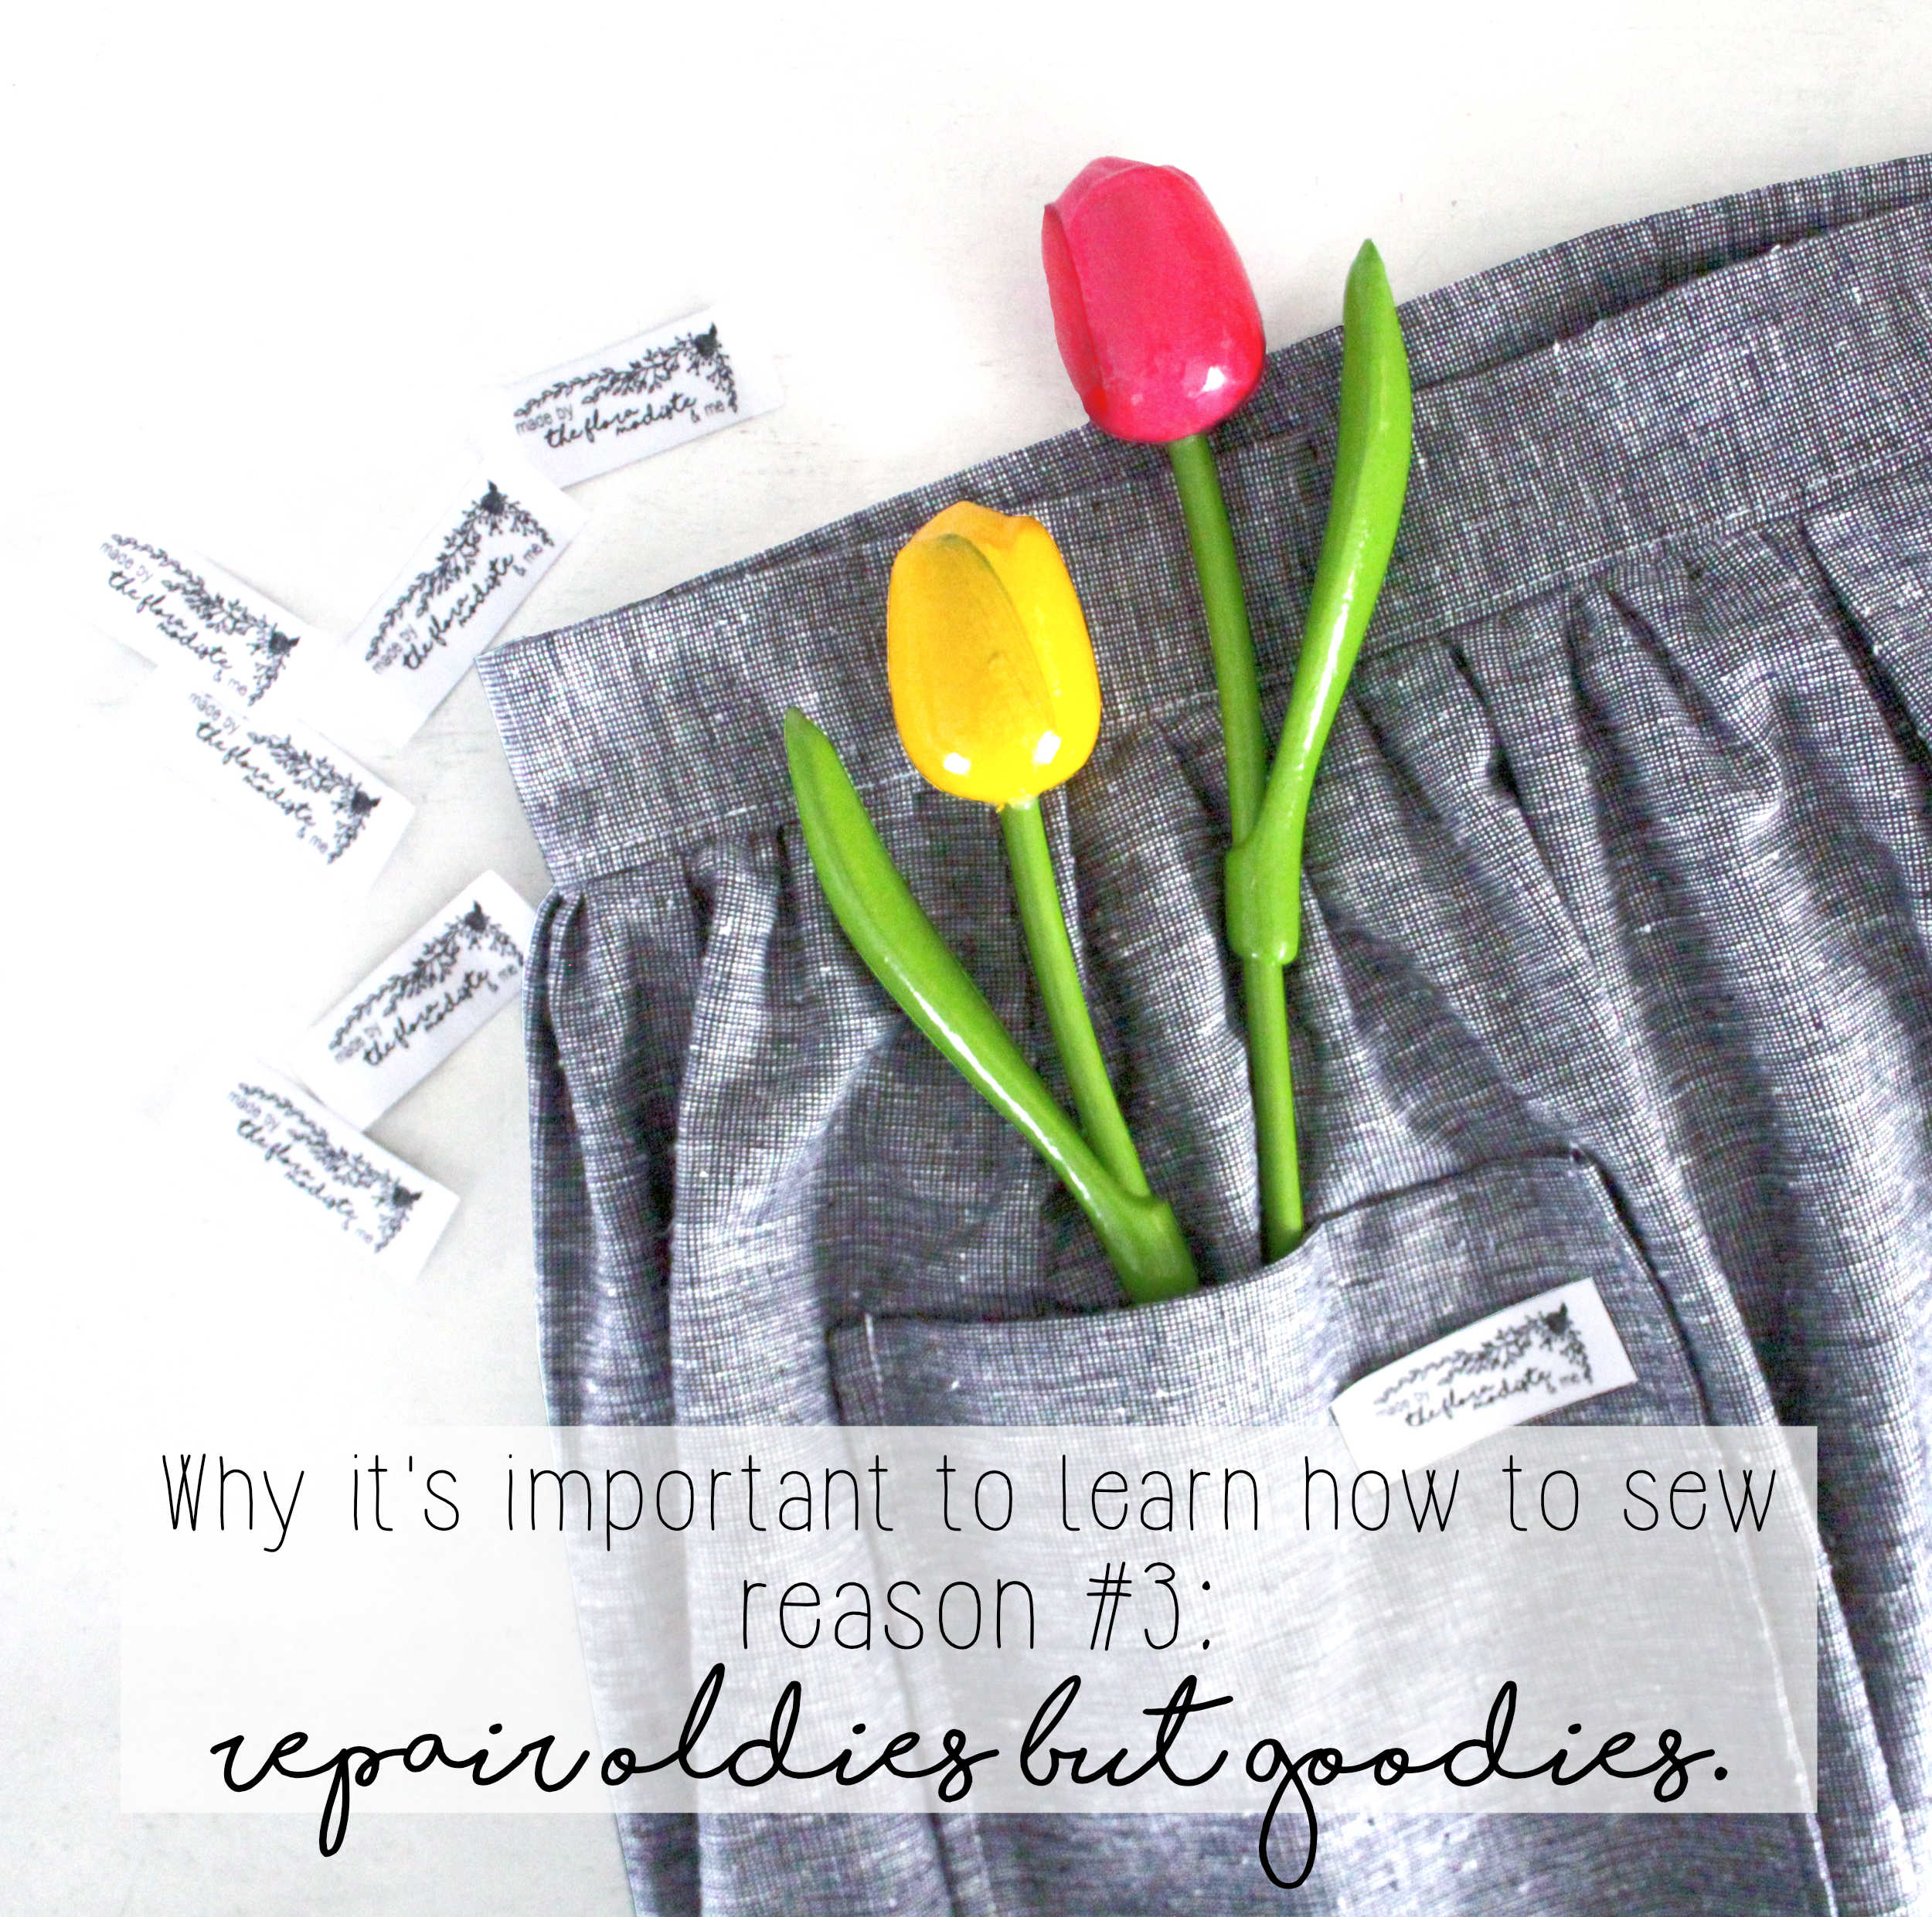 Why It's Important To Learn How To Sew: Reason #3